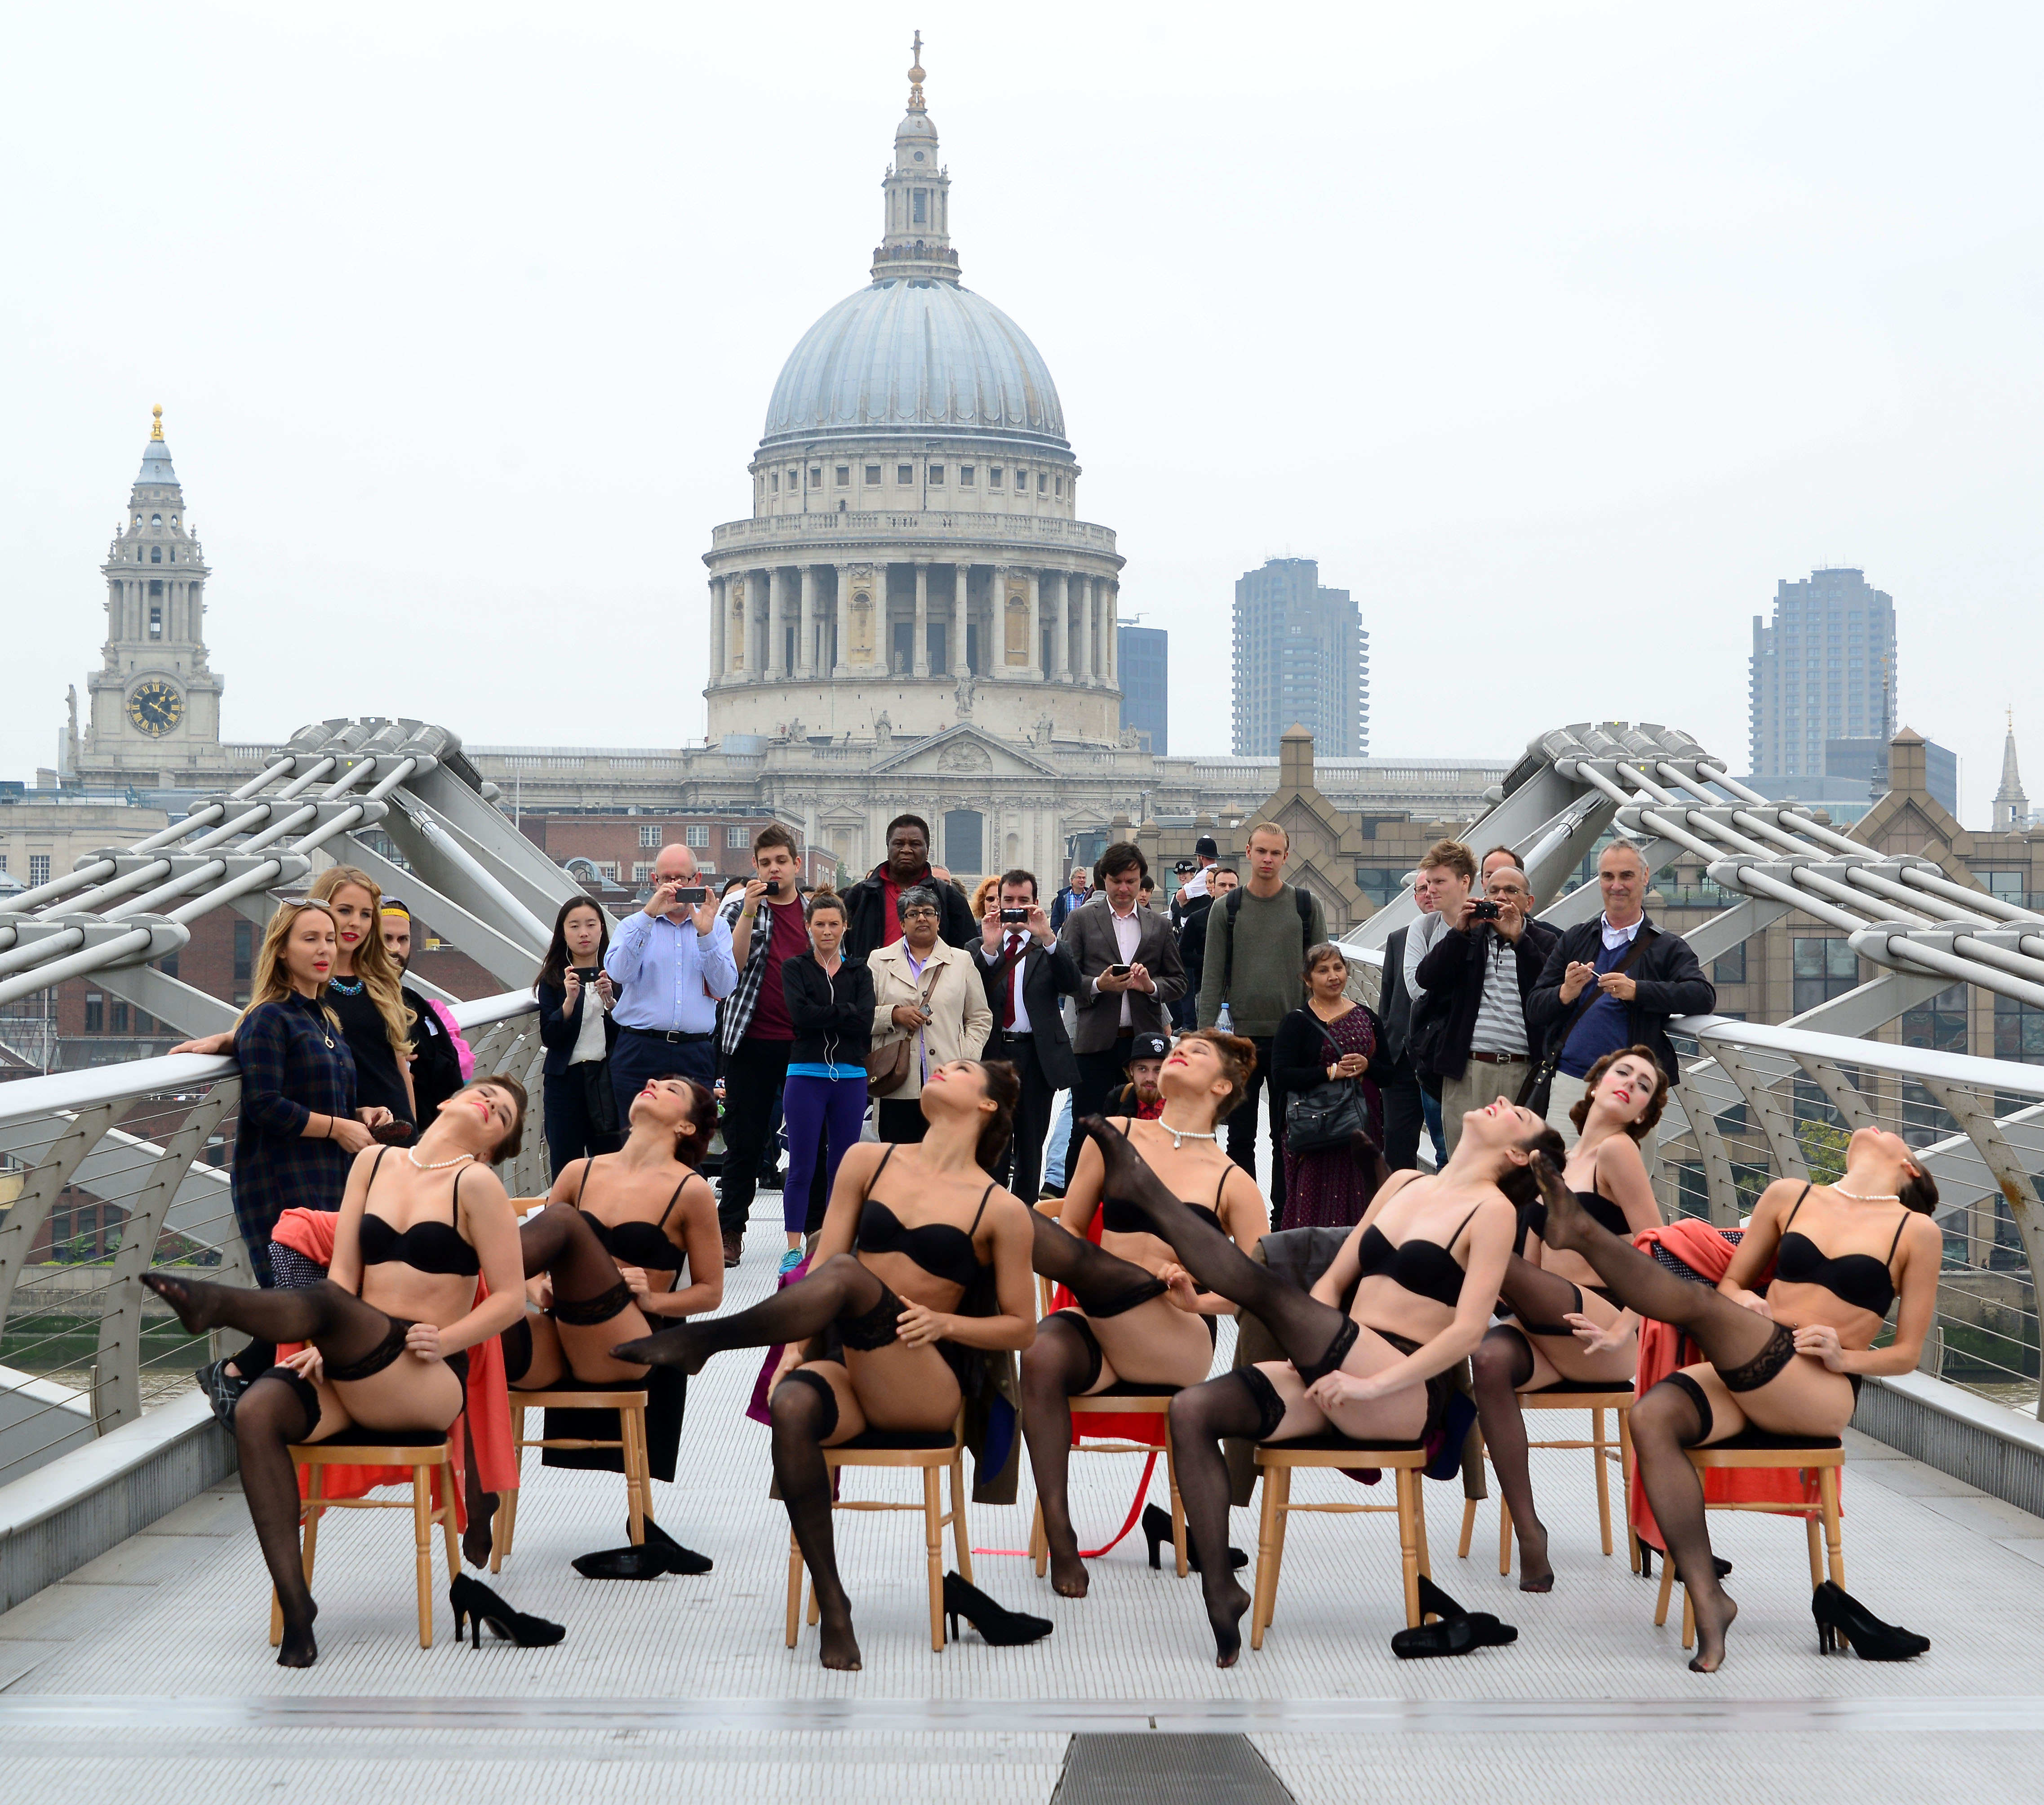 A group of dancers in underwear perform a choreographed dance routine on millennium bridge in the shadow of St Paul's cathedral.